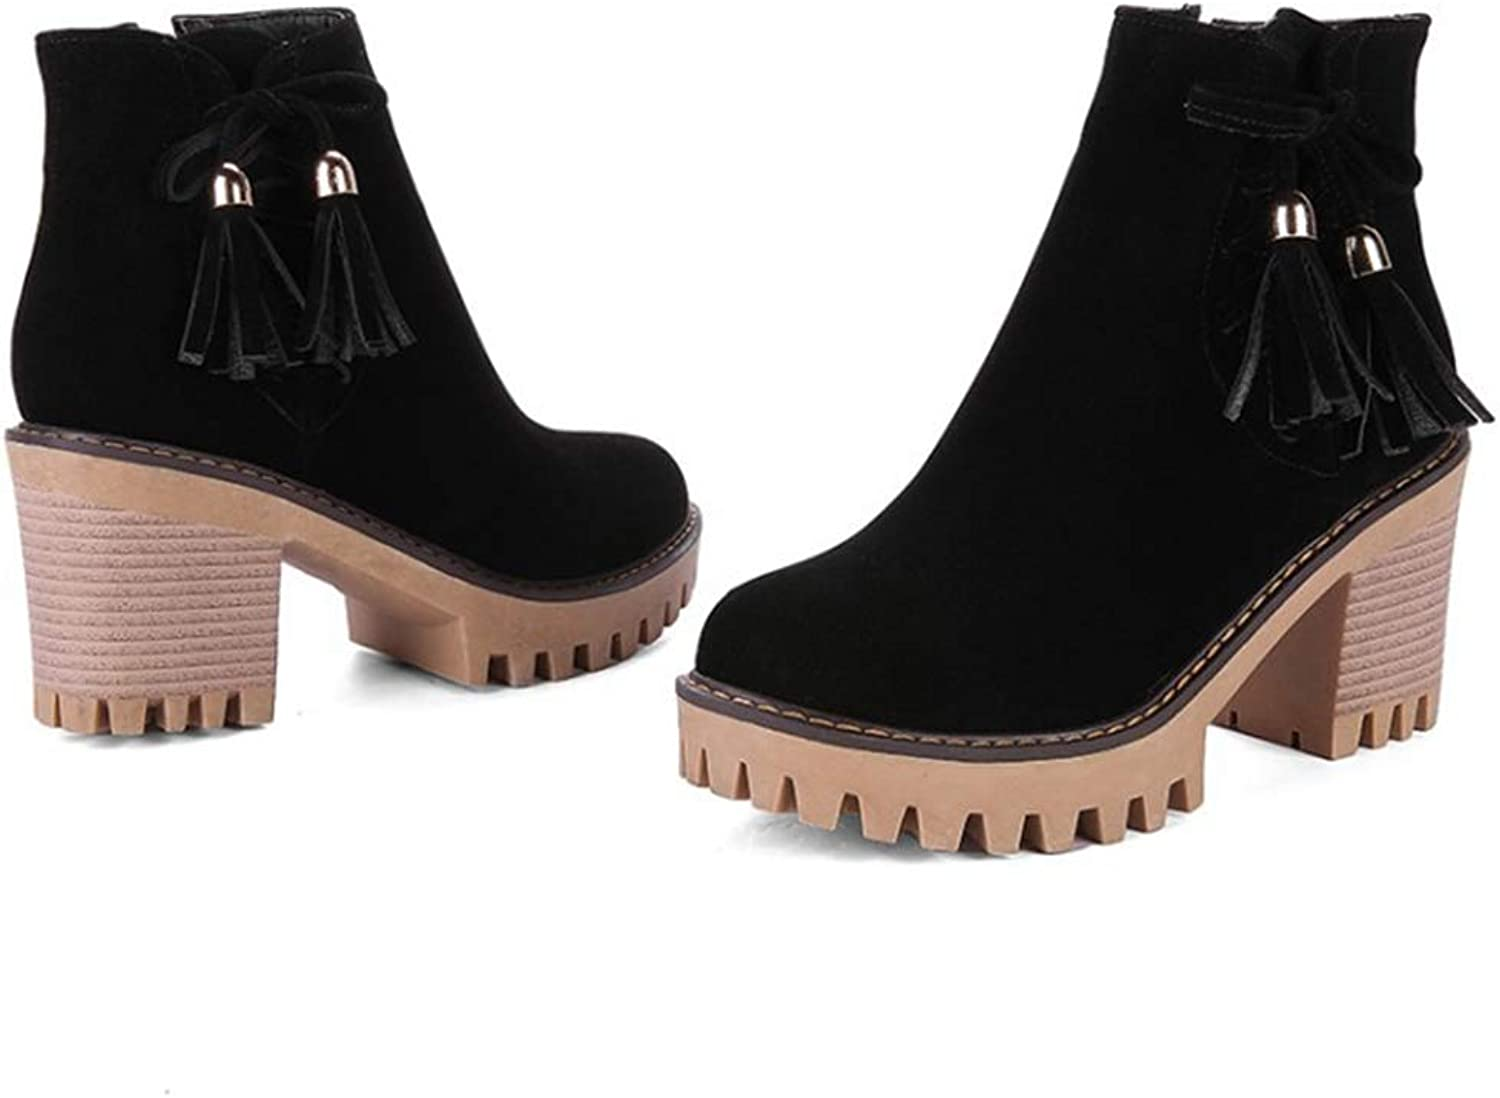 Sam Carle Women Boots, Suede Tassel Zip Closure Thick Heel Pointed Toe Ankle Boots